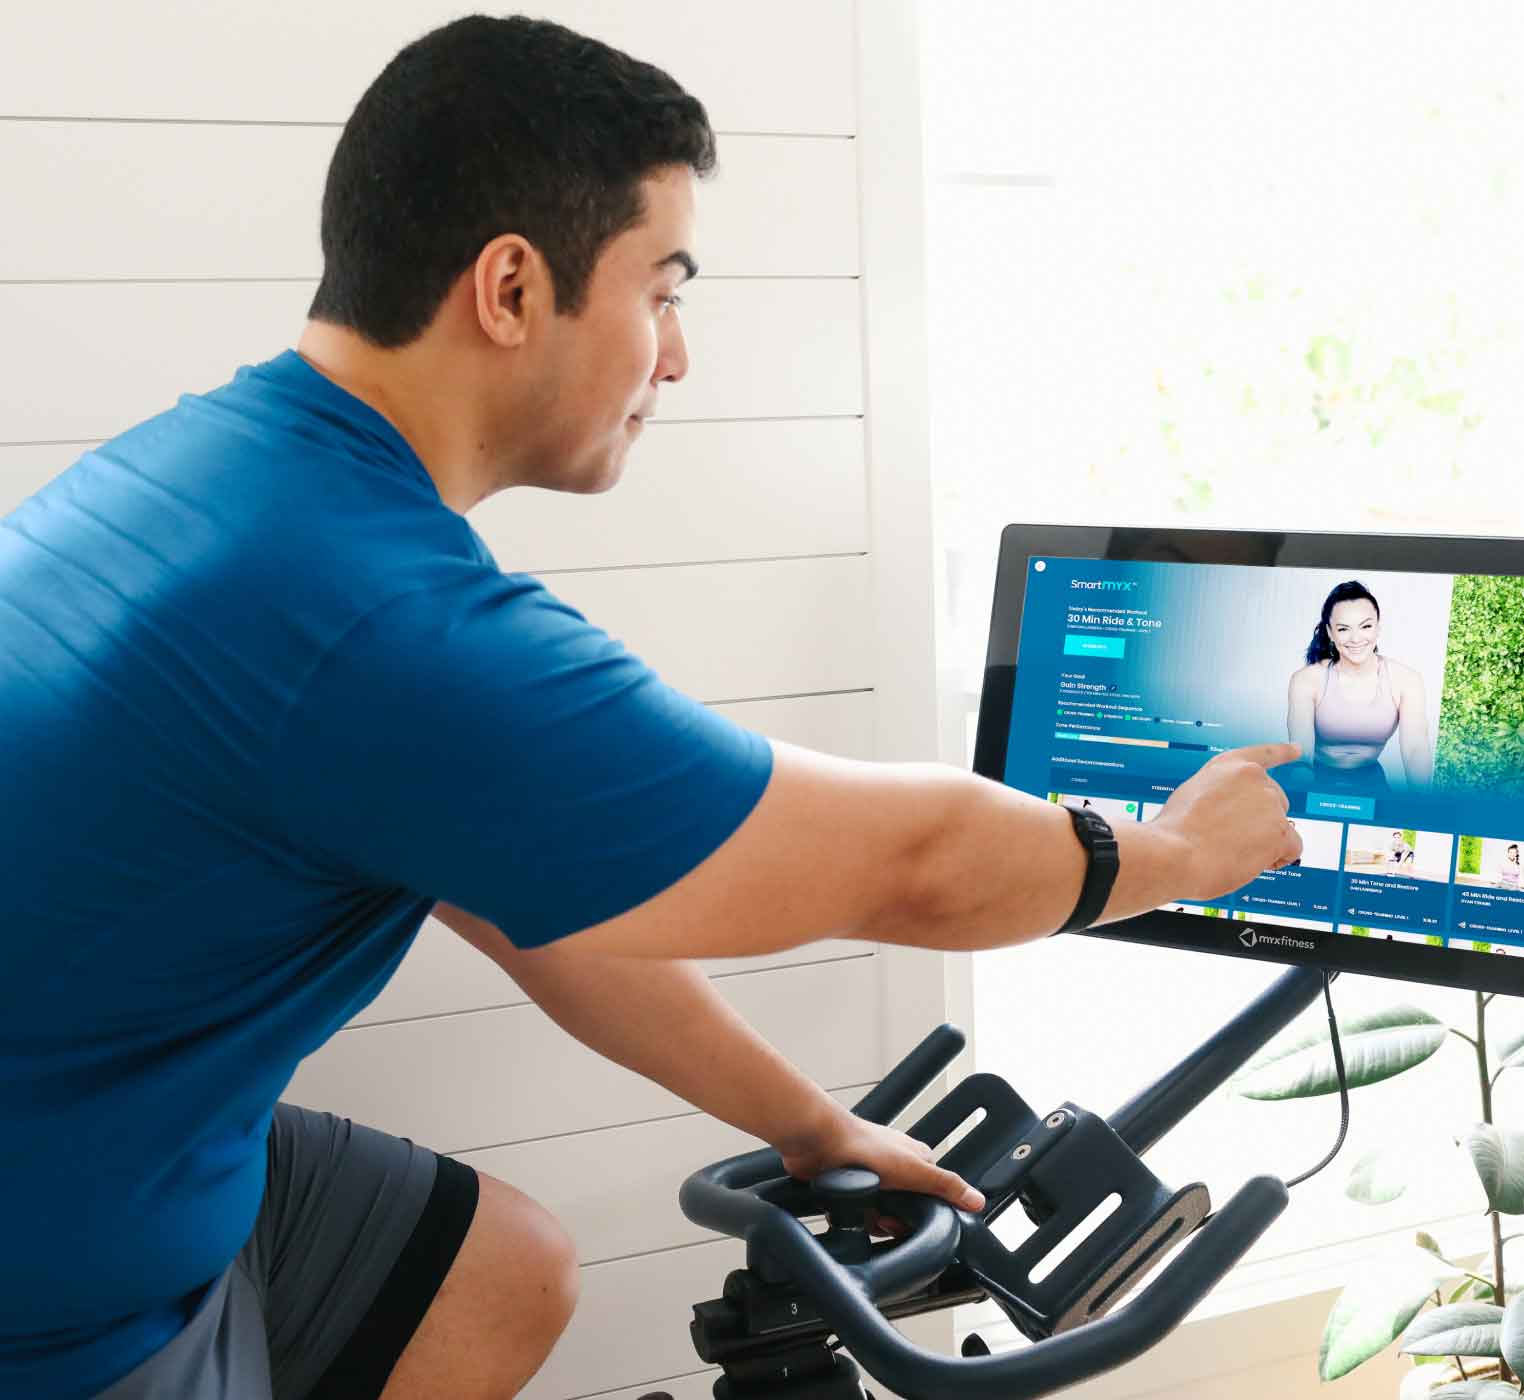 Guy on his MYXfitness bike selecting a workout on the tablet